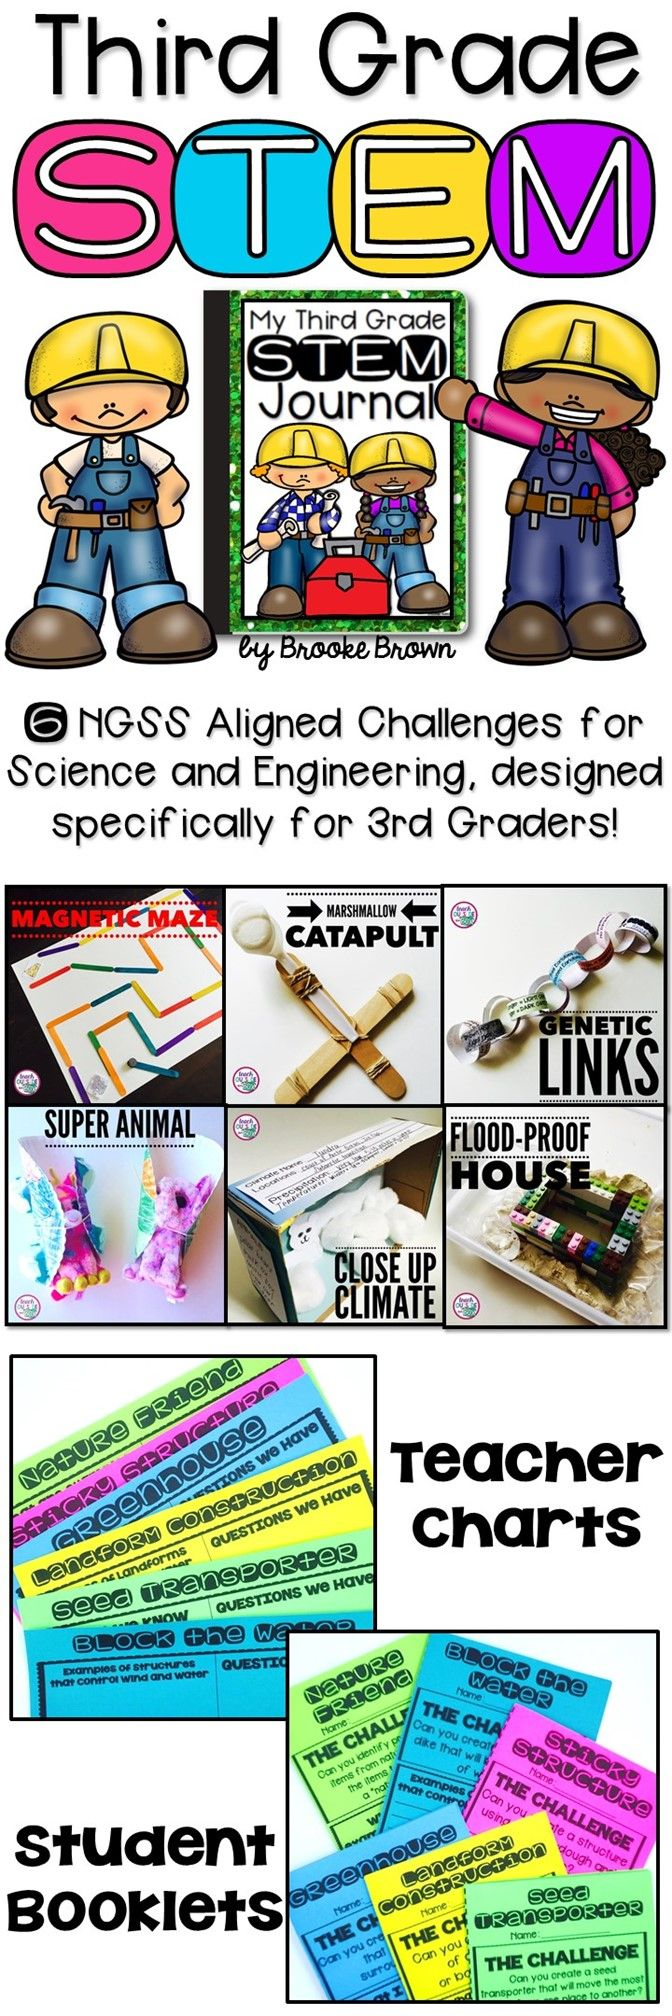 6 NGSS Aligned STEM Challenges designed specifically for 3rd Graders! Science and Engineering Activities